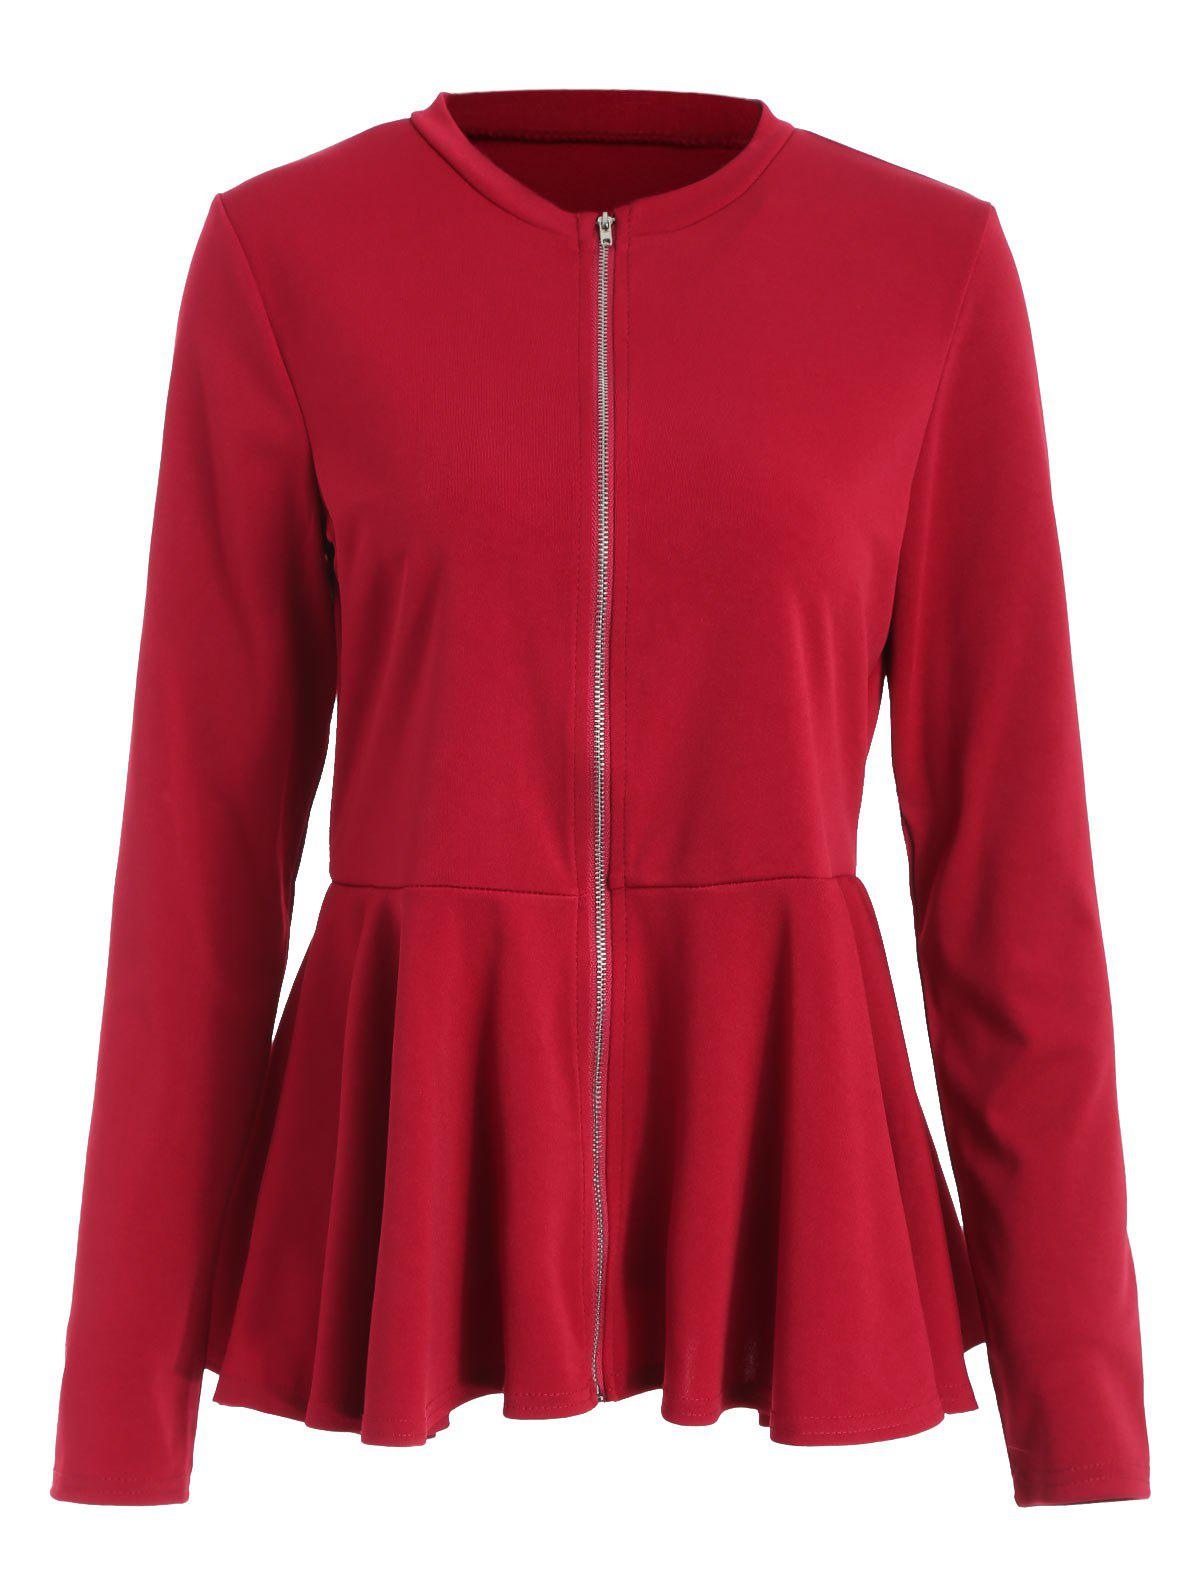 Veste Péplum Zip Rouge Vineux M